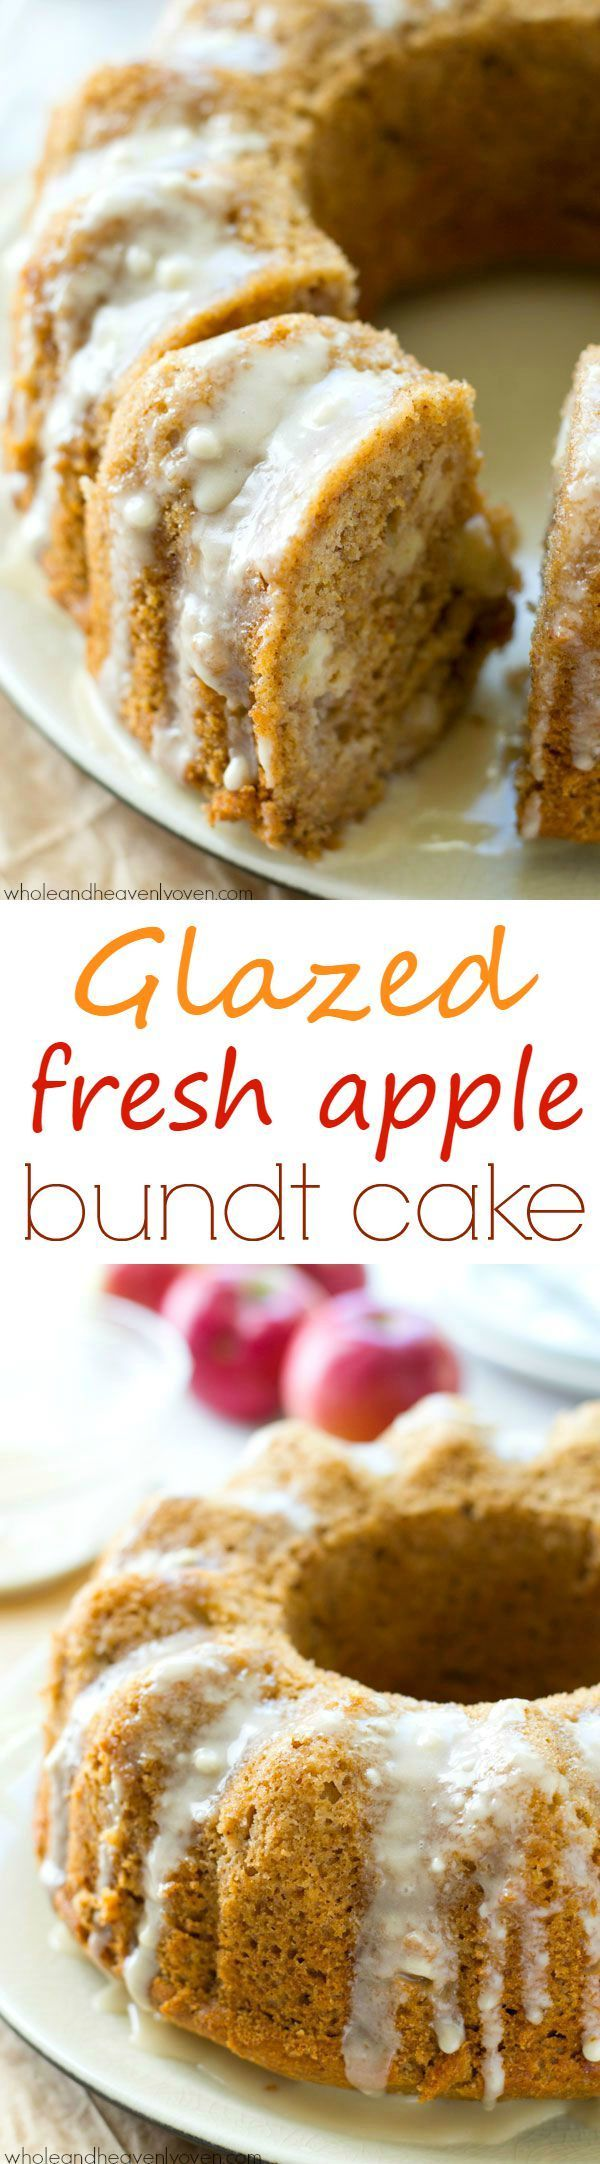 Drizzled with tons of glaze and incredibly soft and filled with soft apple chunks inside, this stunning bundt cake will impress everyone you serve it to! @WholeHeavenly